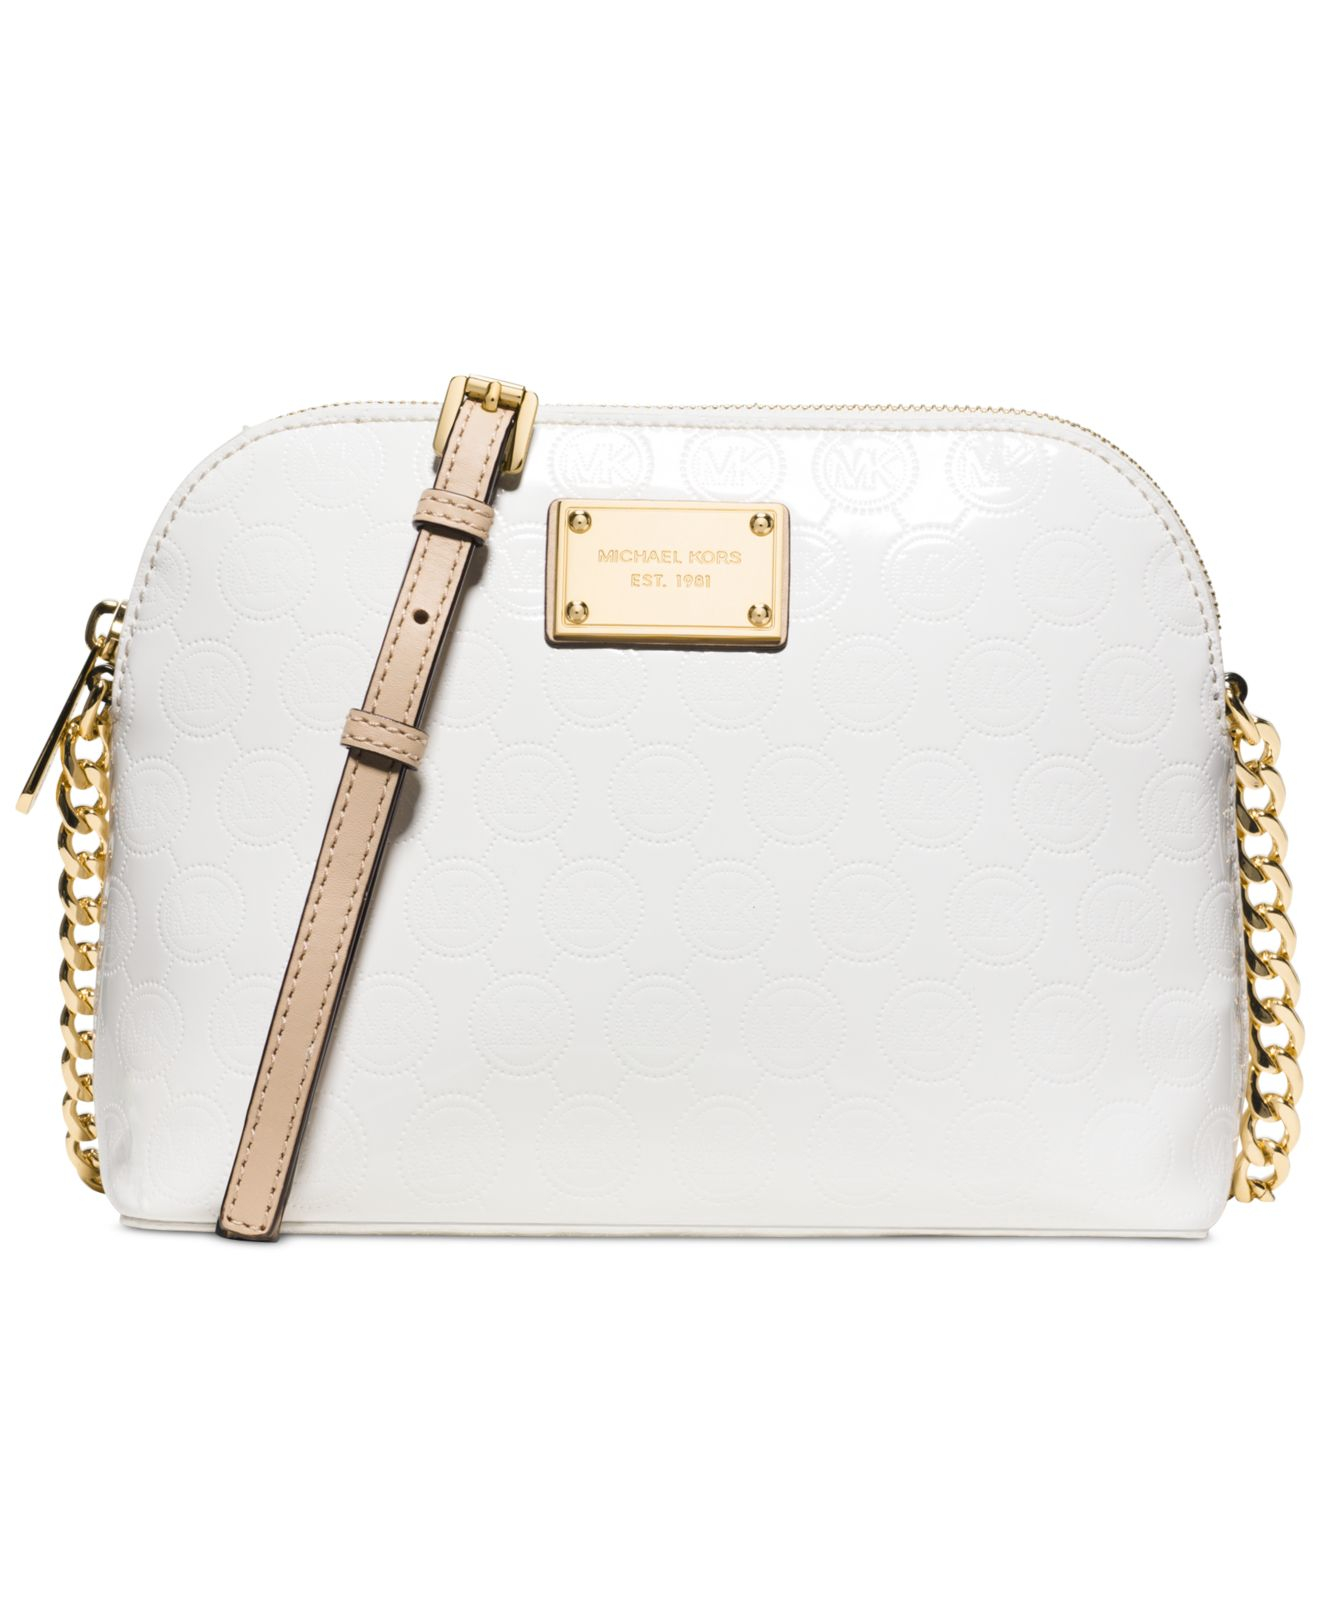 c6f40c8b3e6b25 Gallery. Previously sold at: Macy's · Women's Michael Kors Cindy